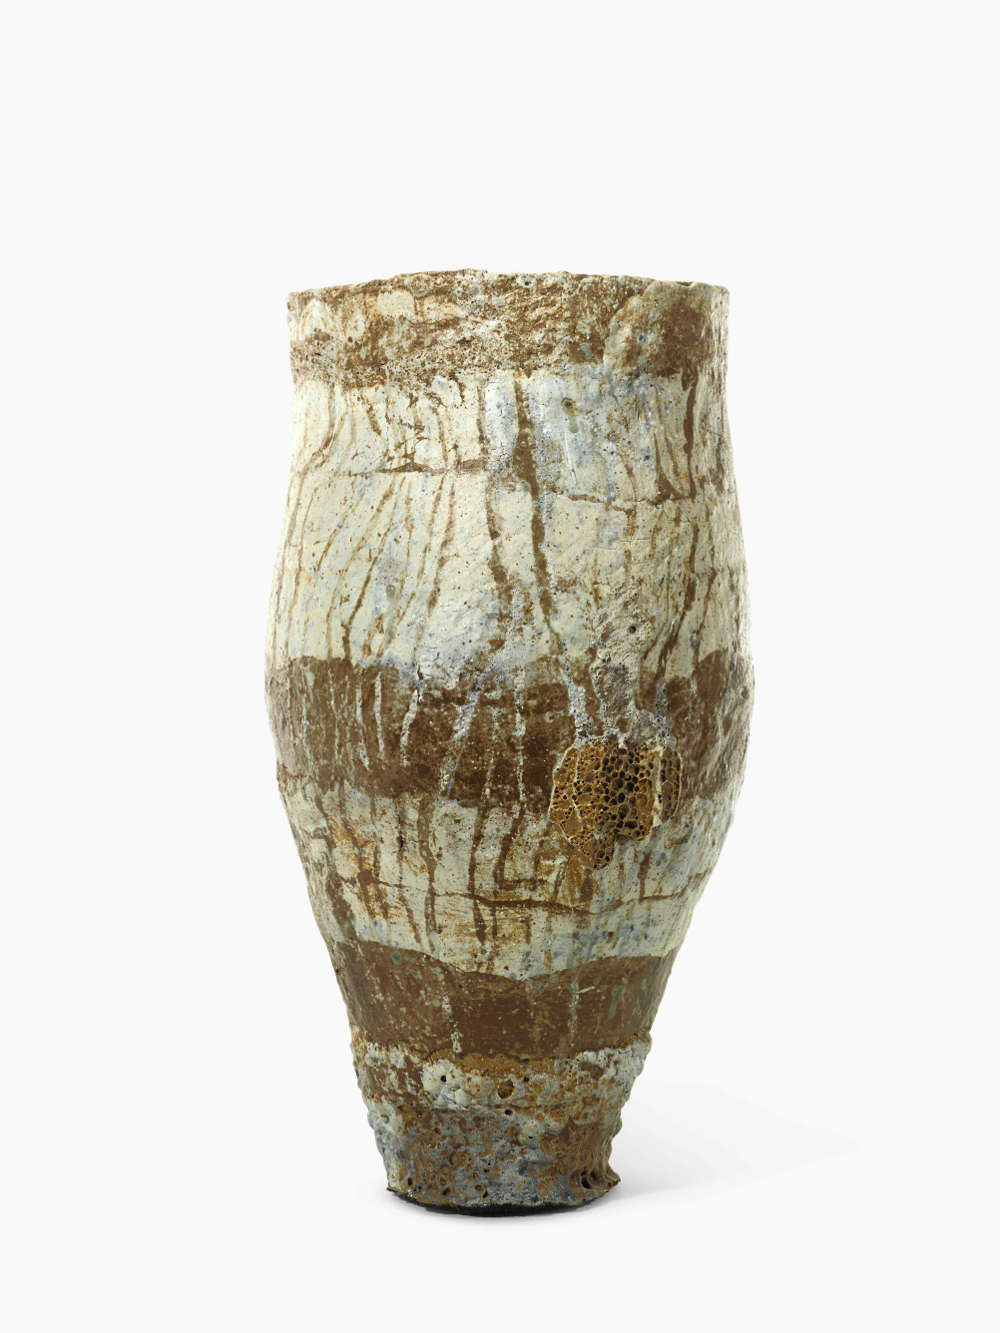 Ewen Henderson, COLLARED JAR, 1980. Mixed clay laminations with oxides and stains height: 60.6 cm. 23 7/8 in. diameter: 32.3 cm. 12 3/4 in.